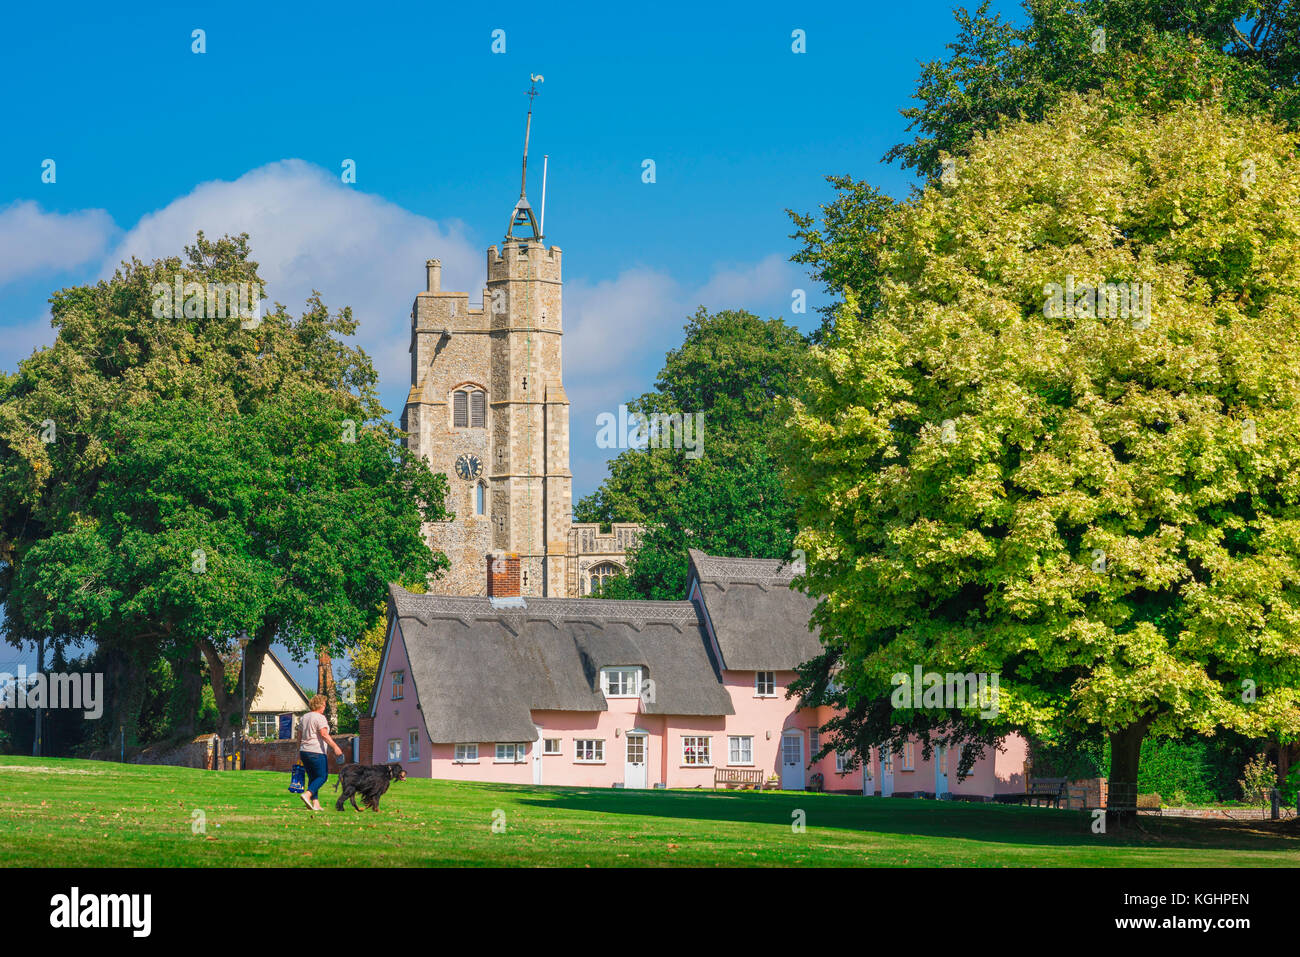 Village green UK, view across the village green towards the medieval church tower and traditional pink cottages - Stock Image